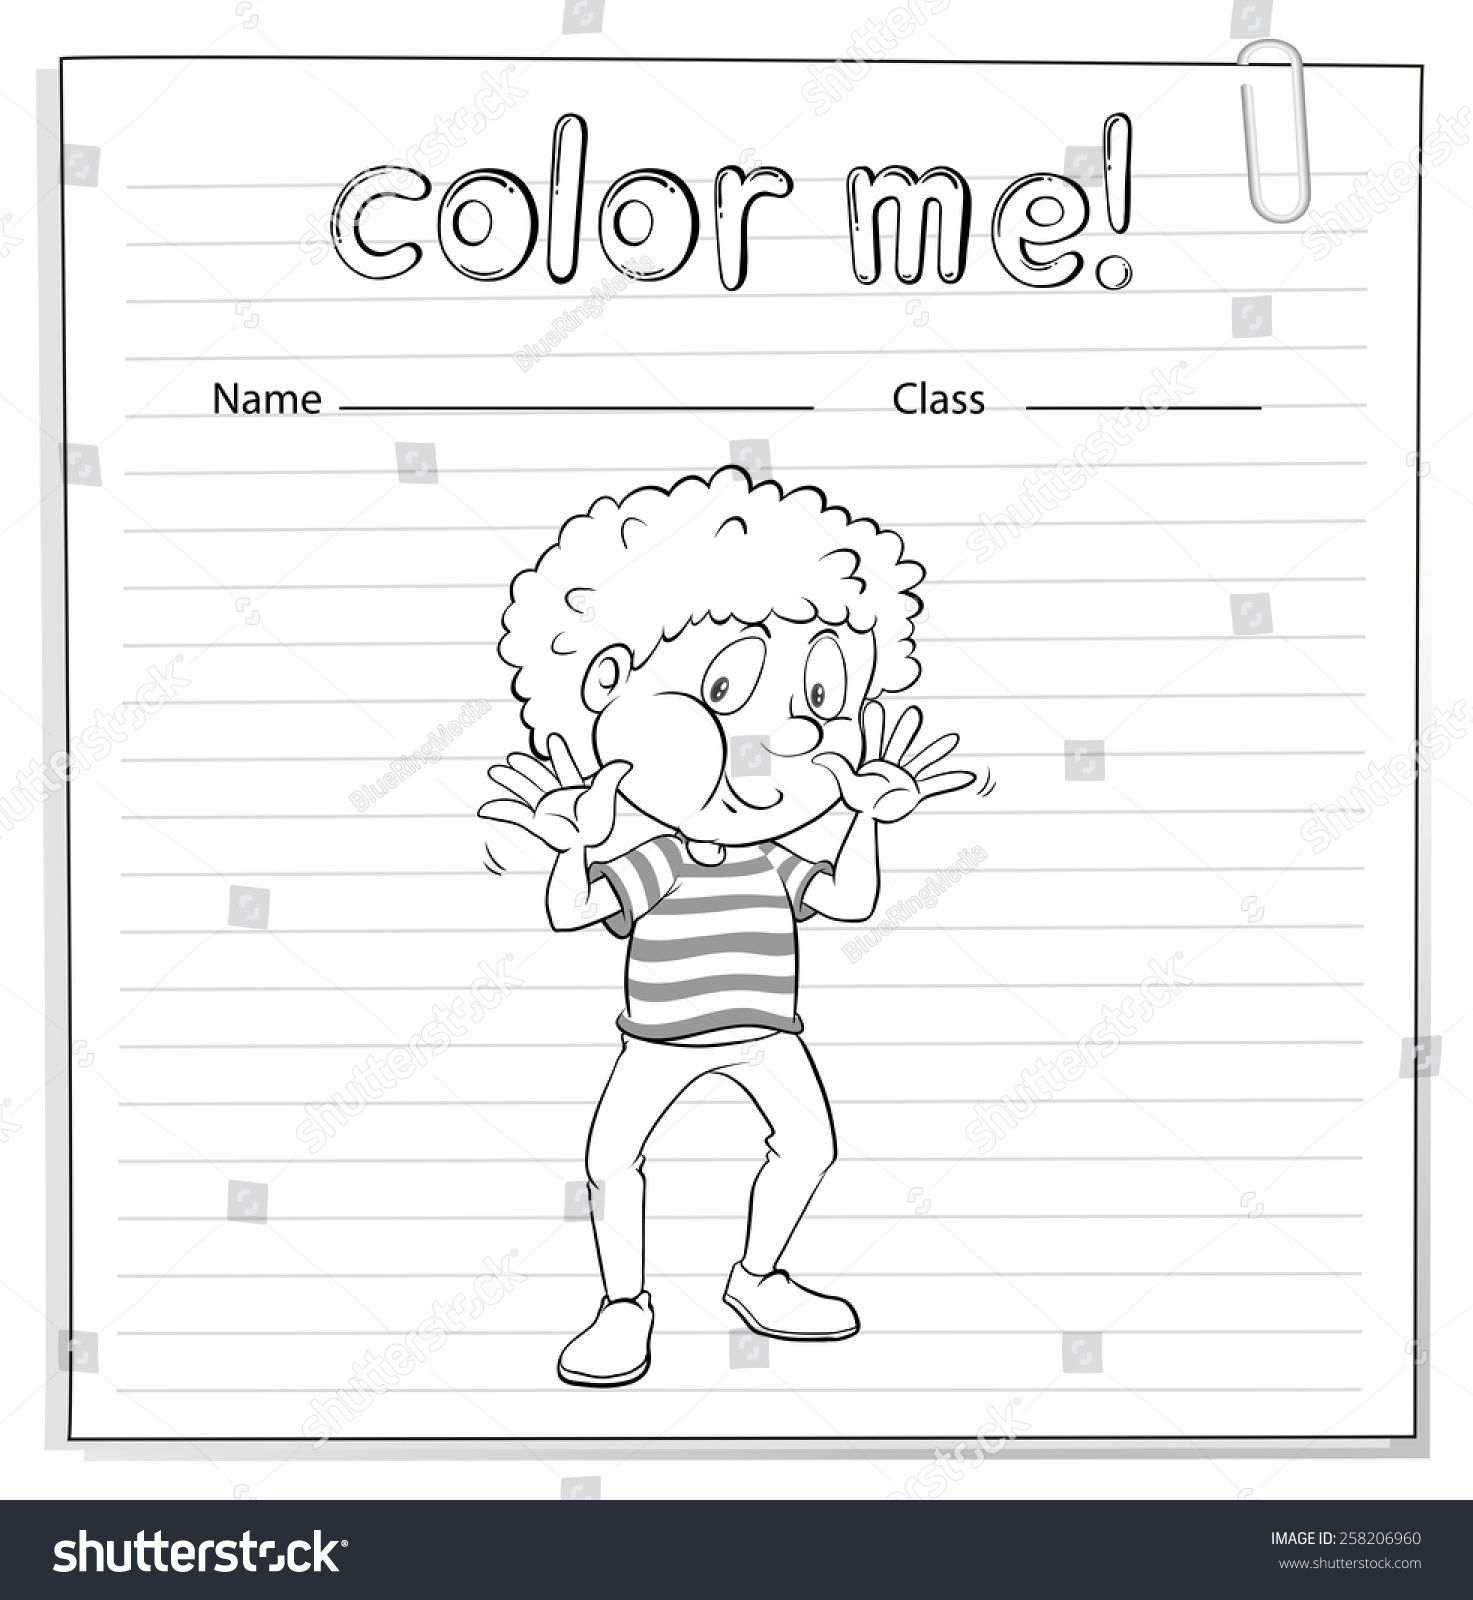 Coloring Worksheet With A Little Boy On A White Background